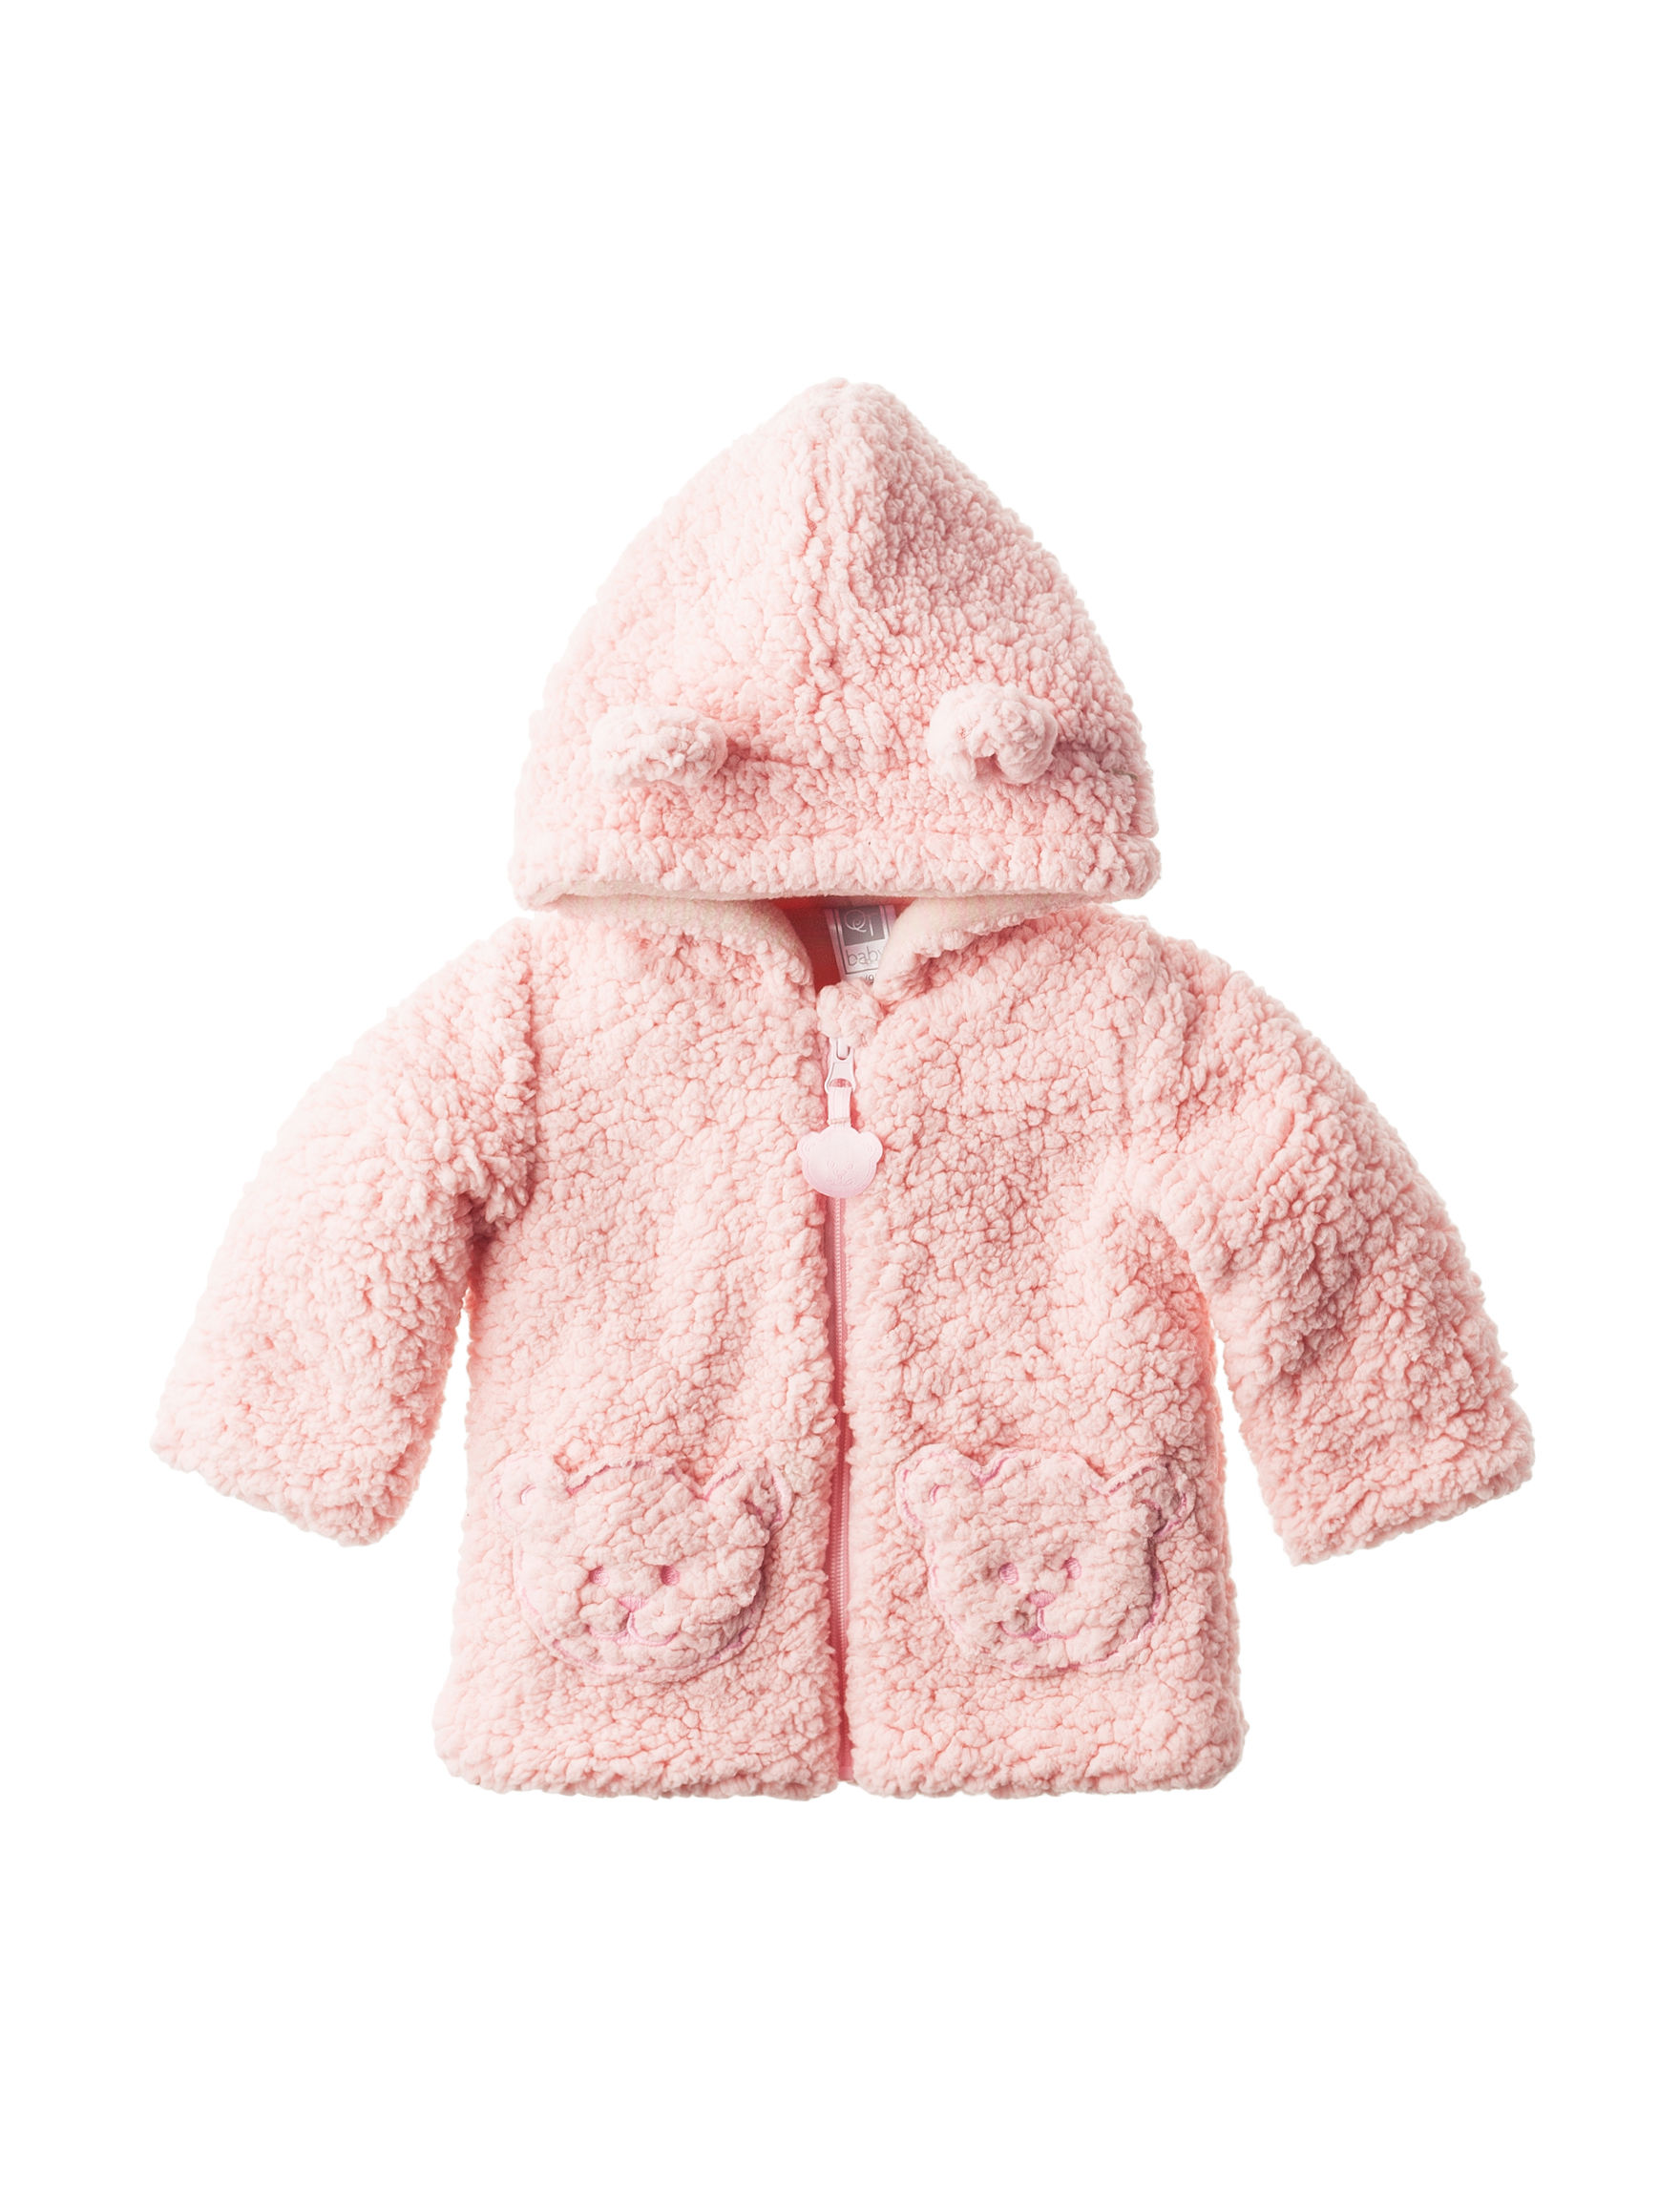 qt baby shaggy faux fur jacket baby 3 9 mos stage stores